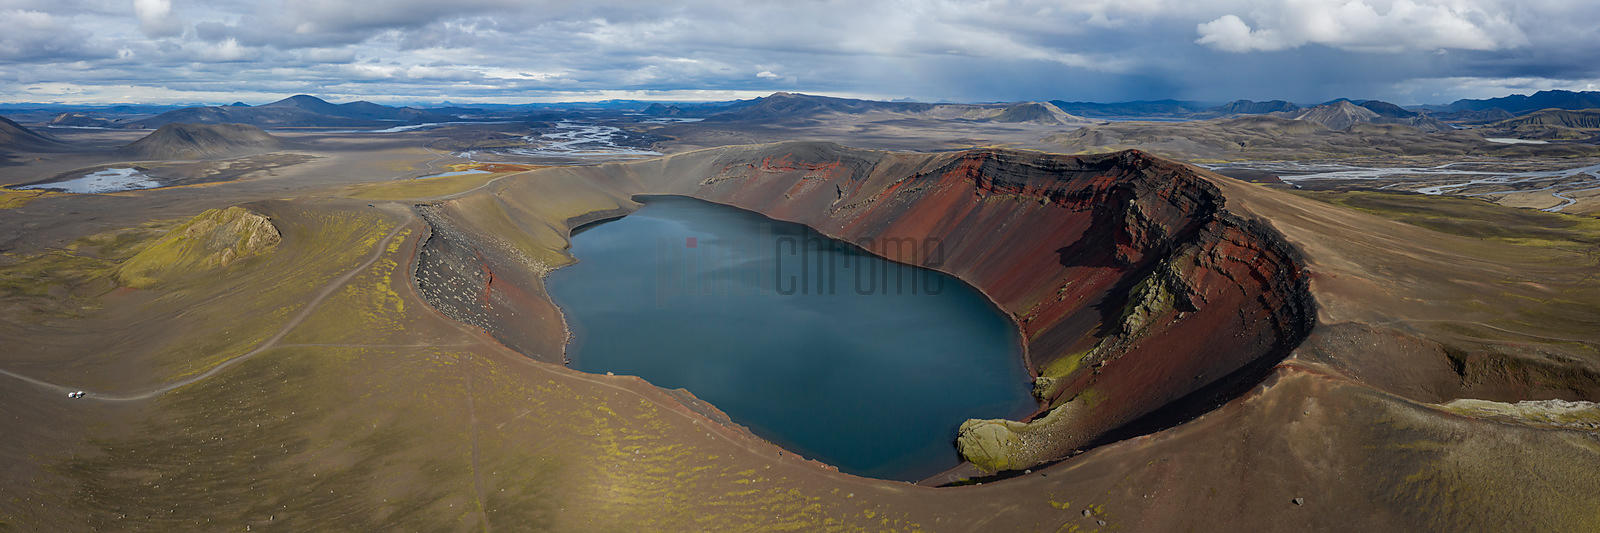 Panorama of Ljotopollur (Ugly Puddle) Crater